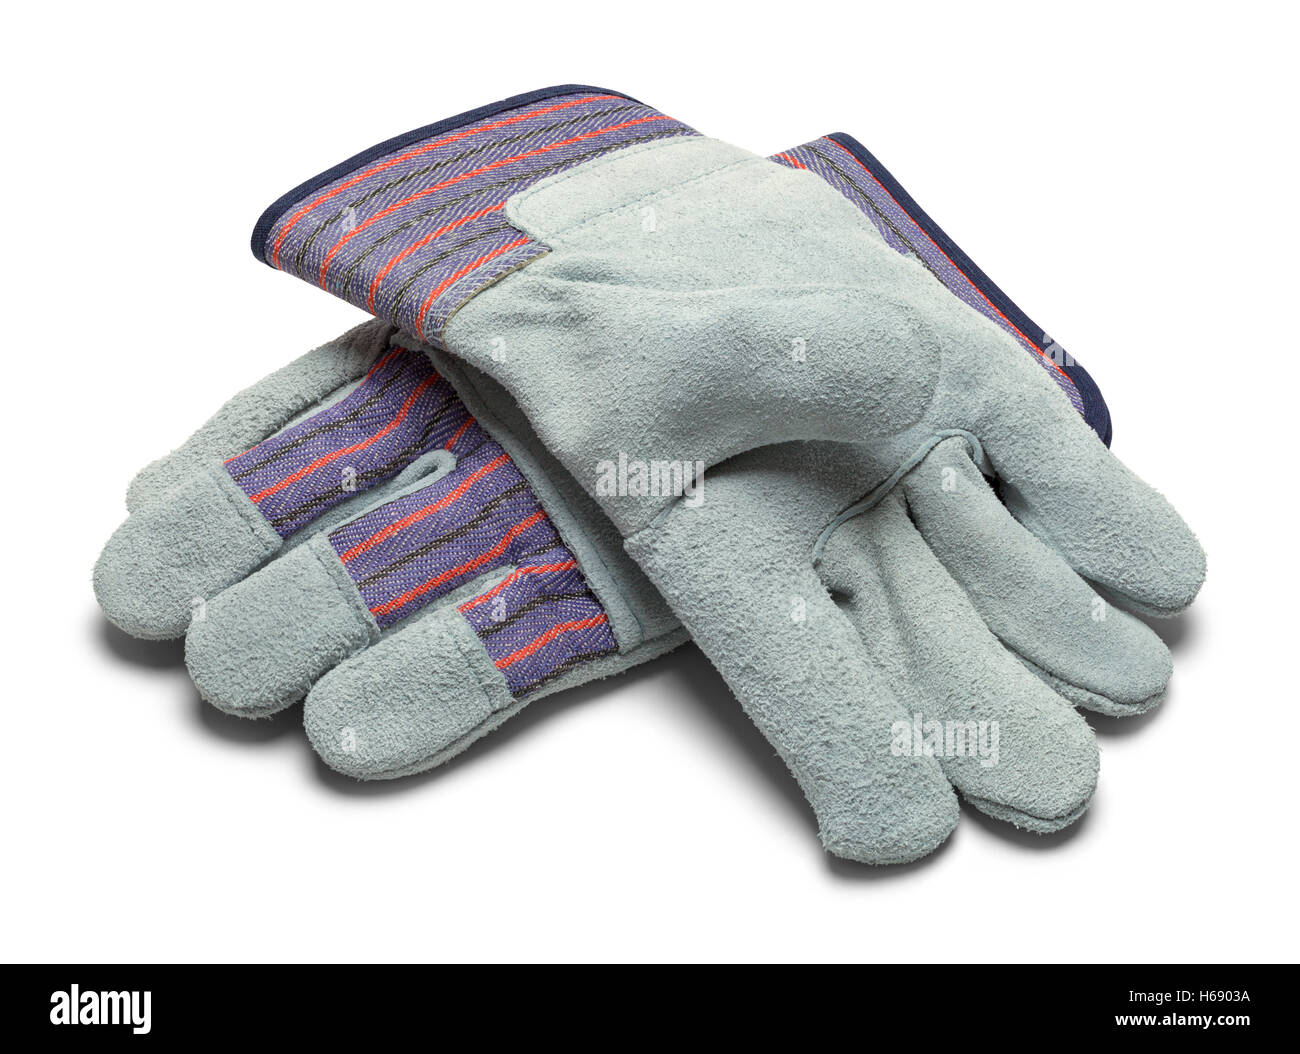 Pair of Grey Leather Work Gloves Isolated on White Background. - Stock Image